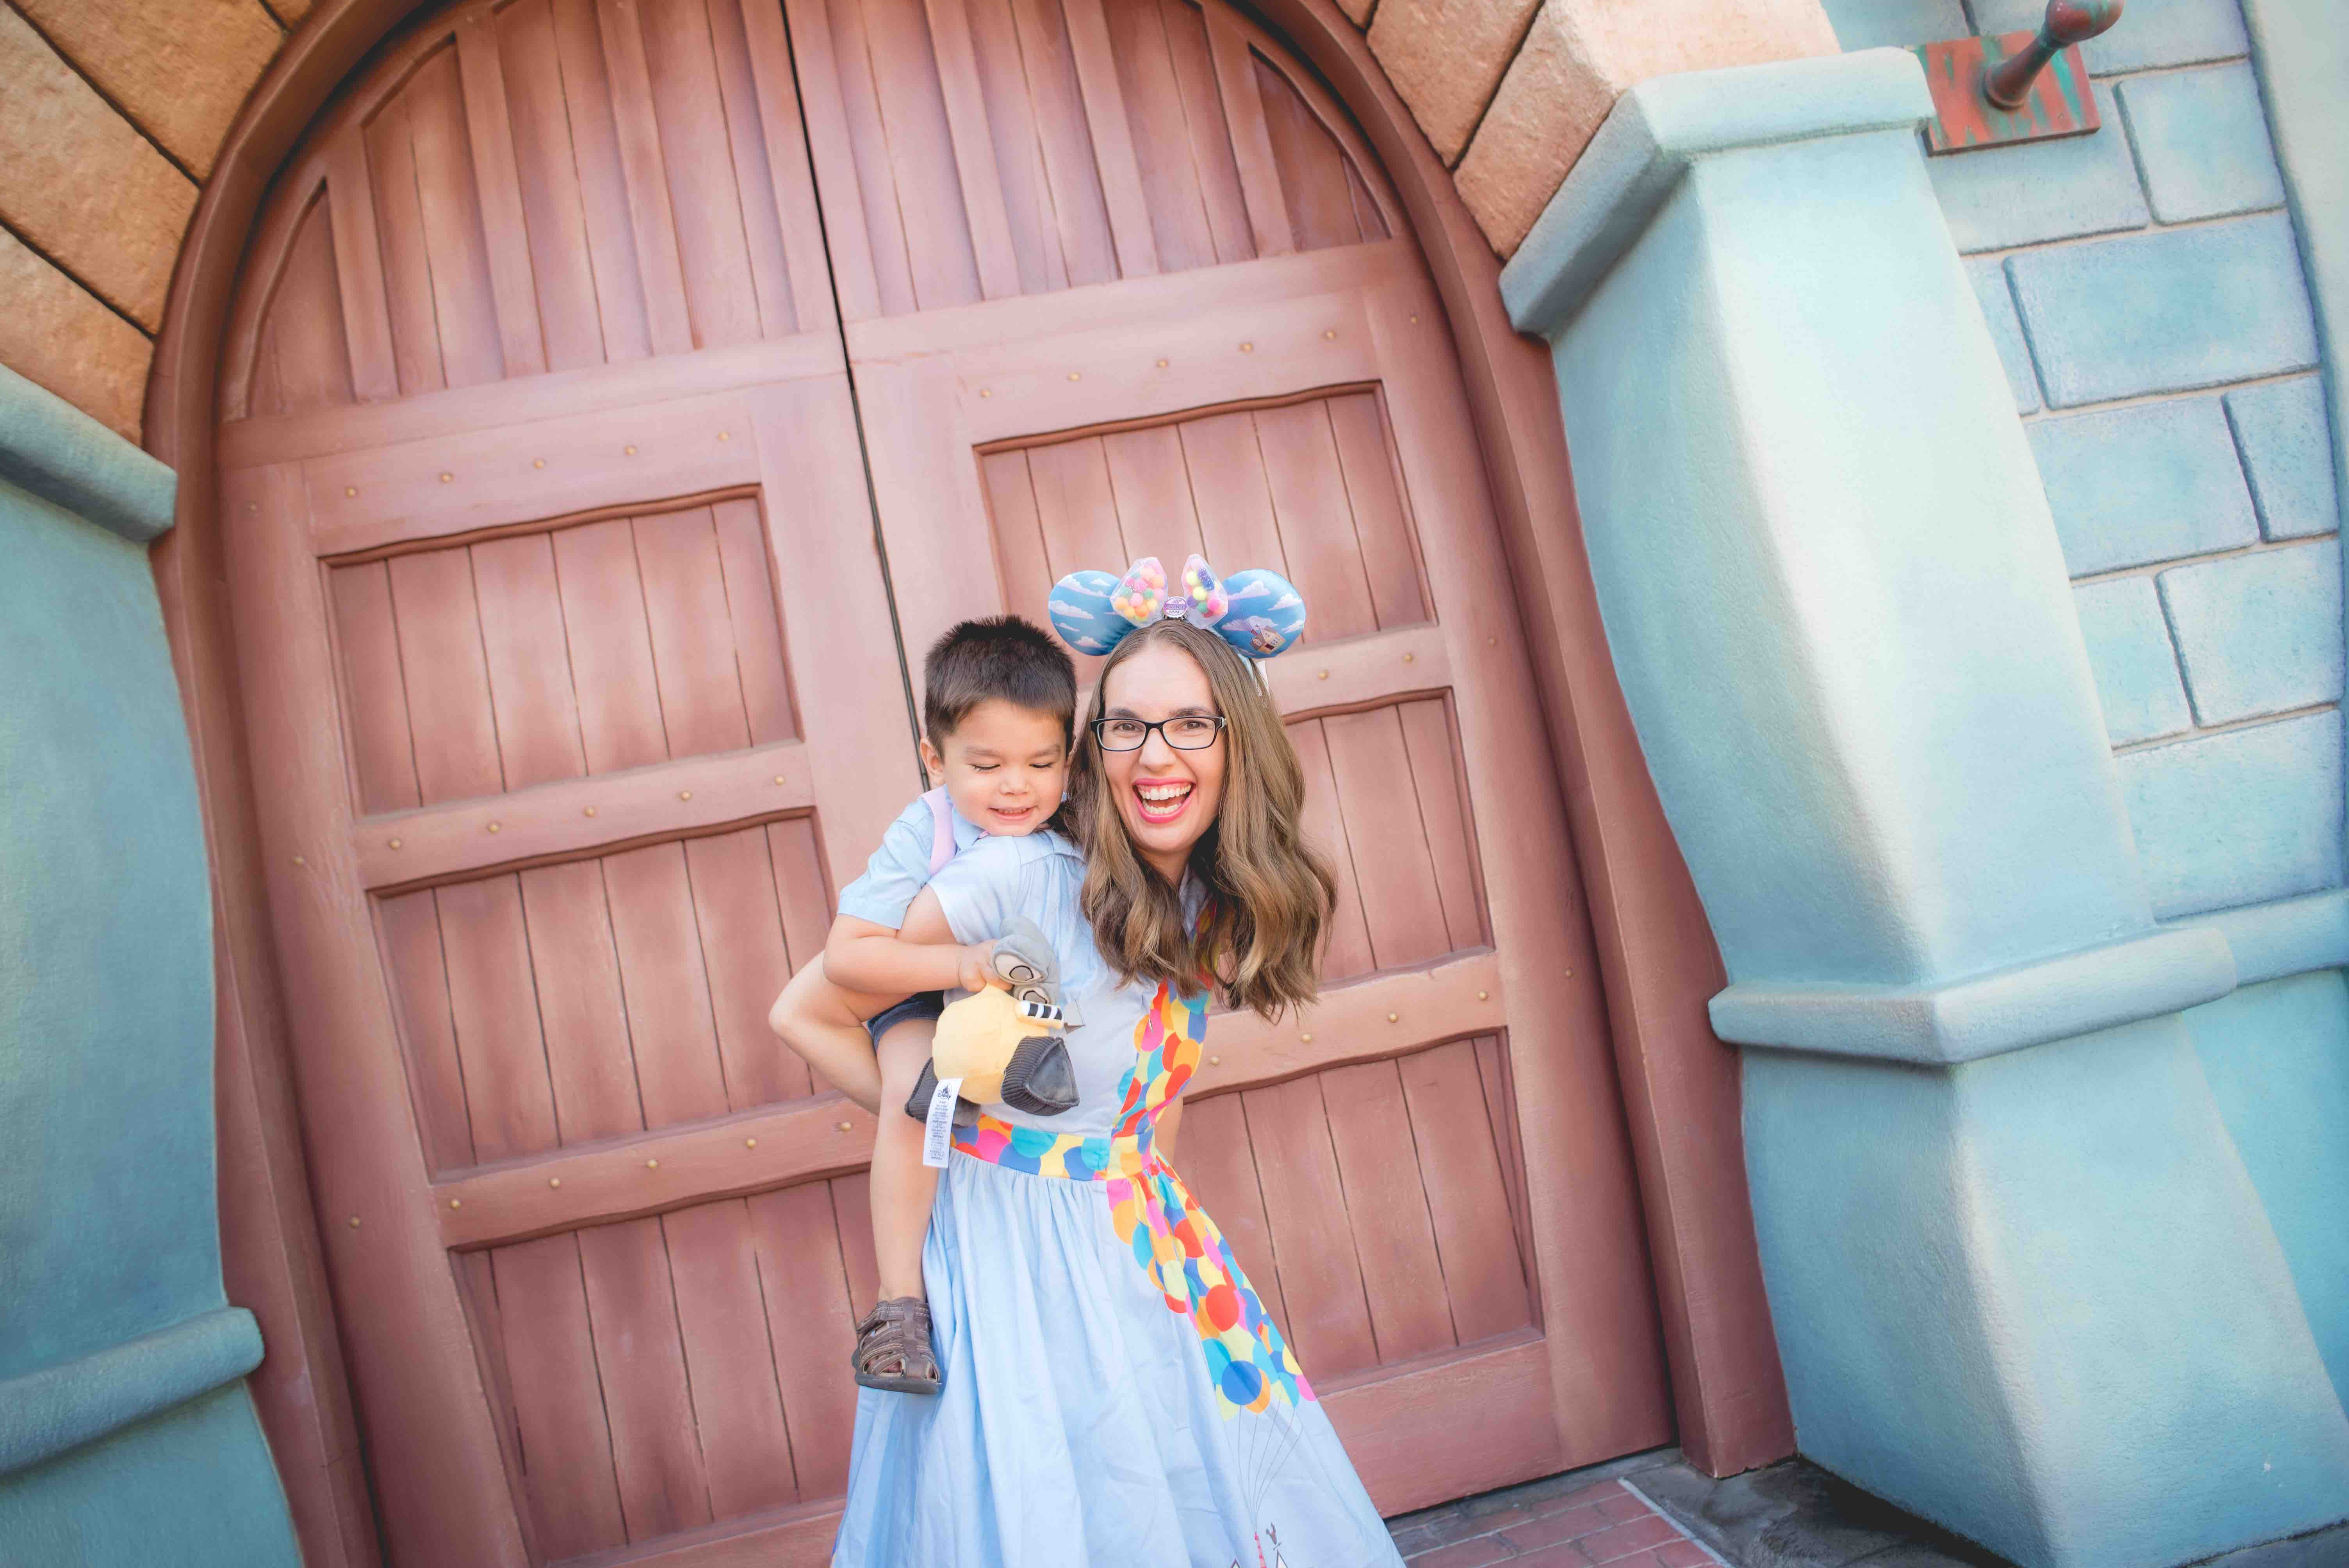 Book a Disneyland photo shoot with a professional photographer at Disneyland or Disney California Adventure